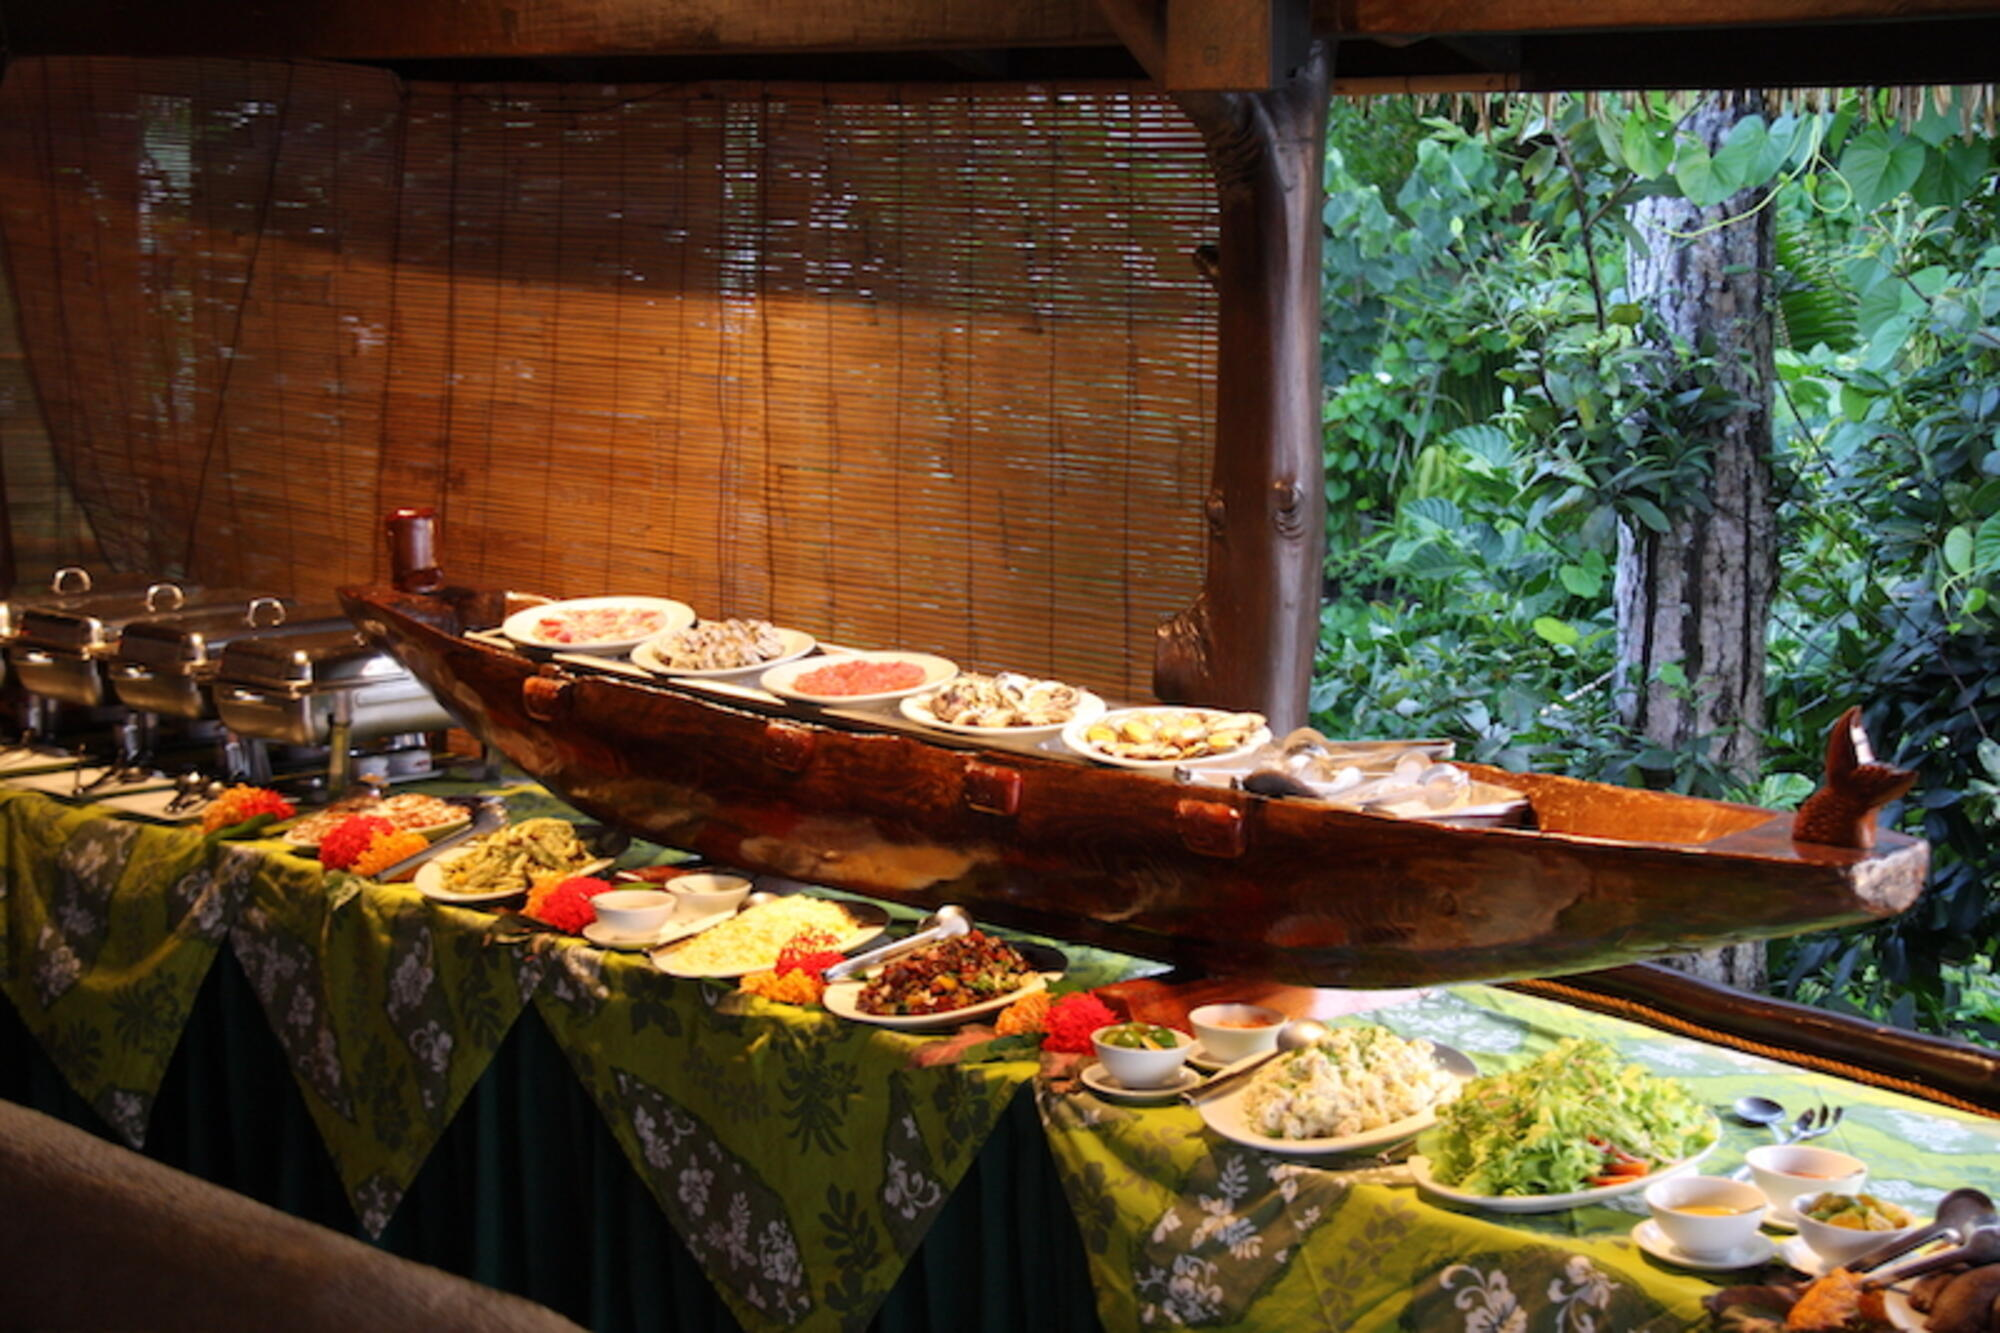 Island Night Buffet Dinner at Pacific Resort Aitutaki